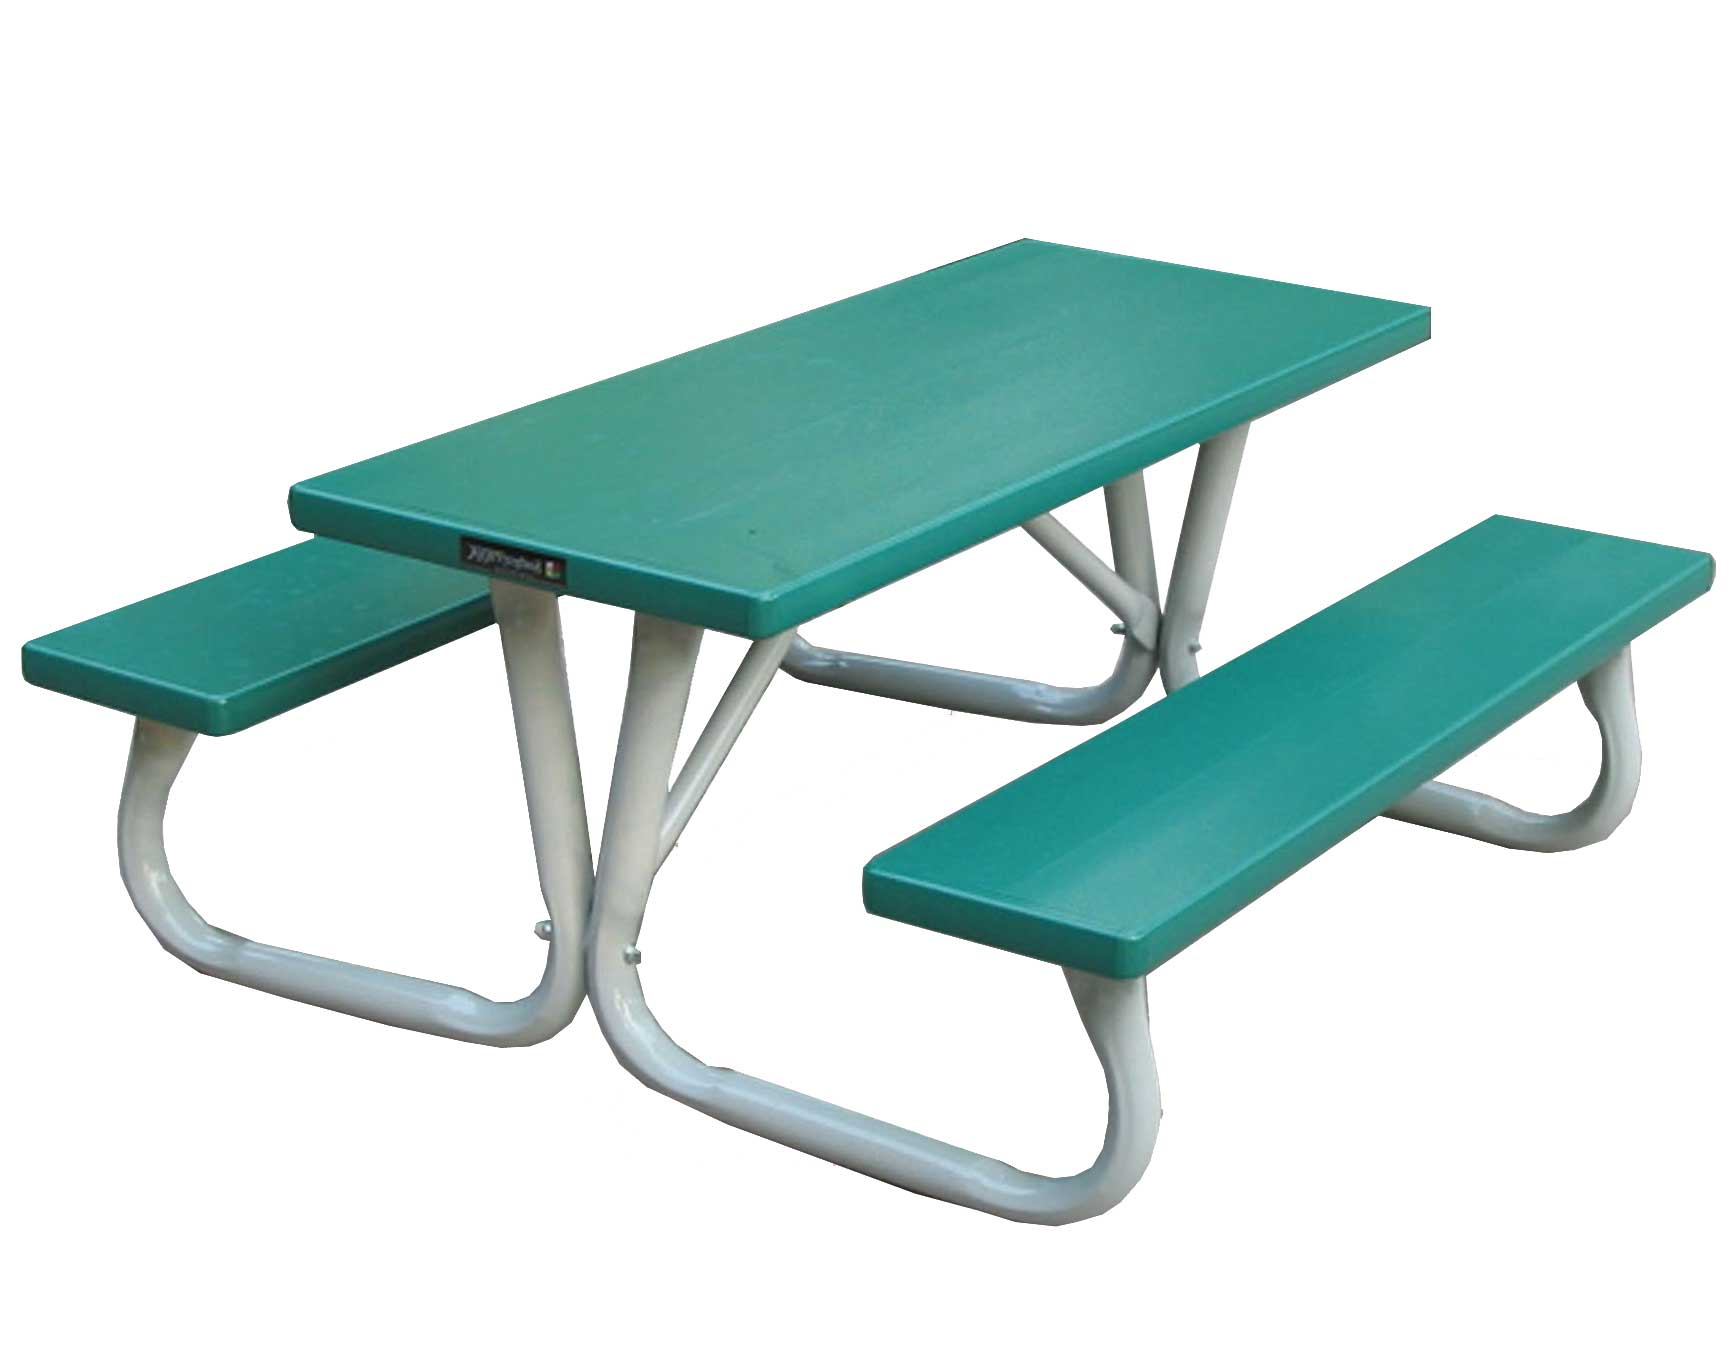 6 Aluminum Folding Kids Picnic Table